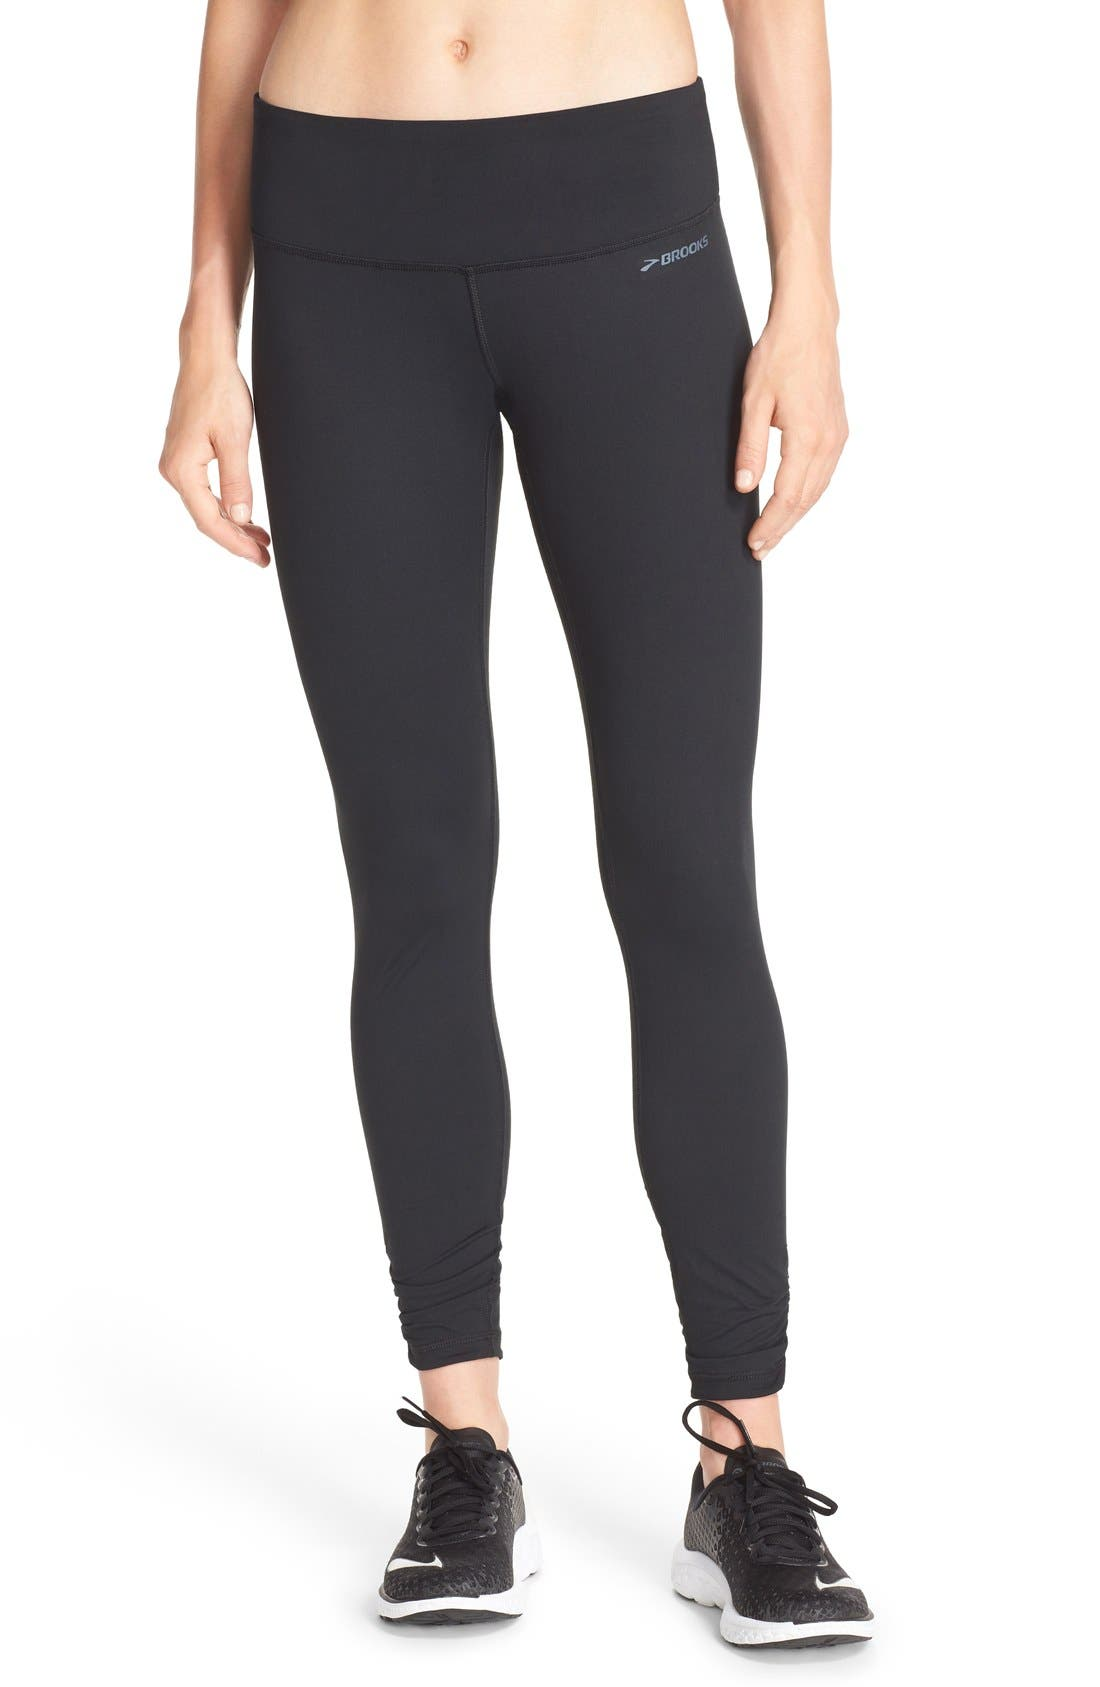 Main Image - Brooks 'Greenlight' Running Tights